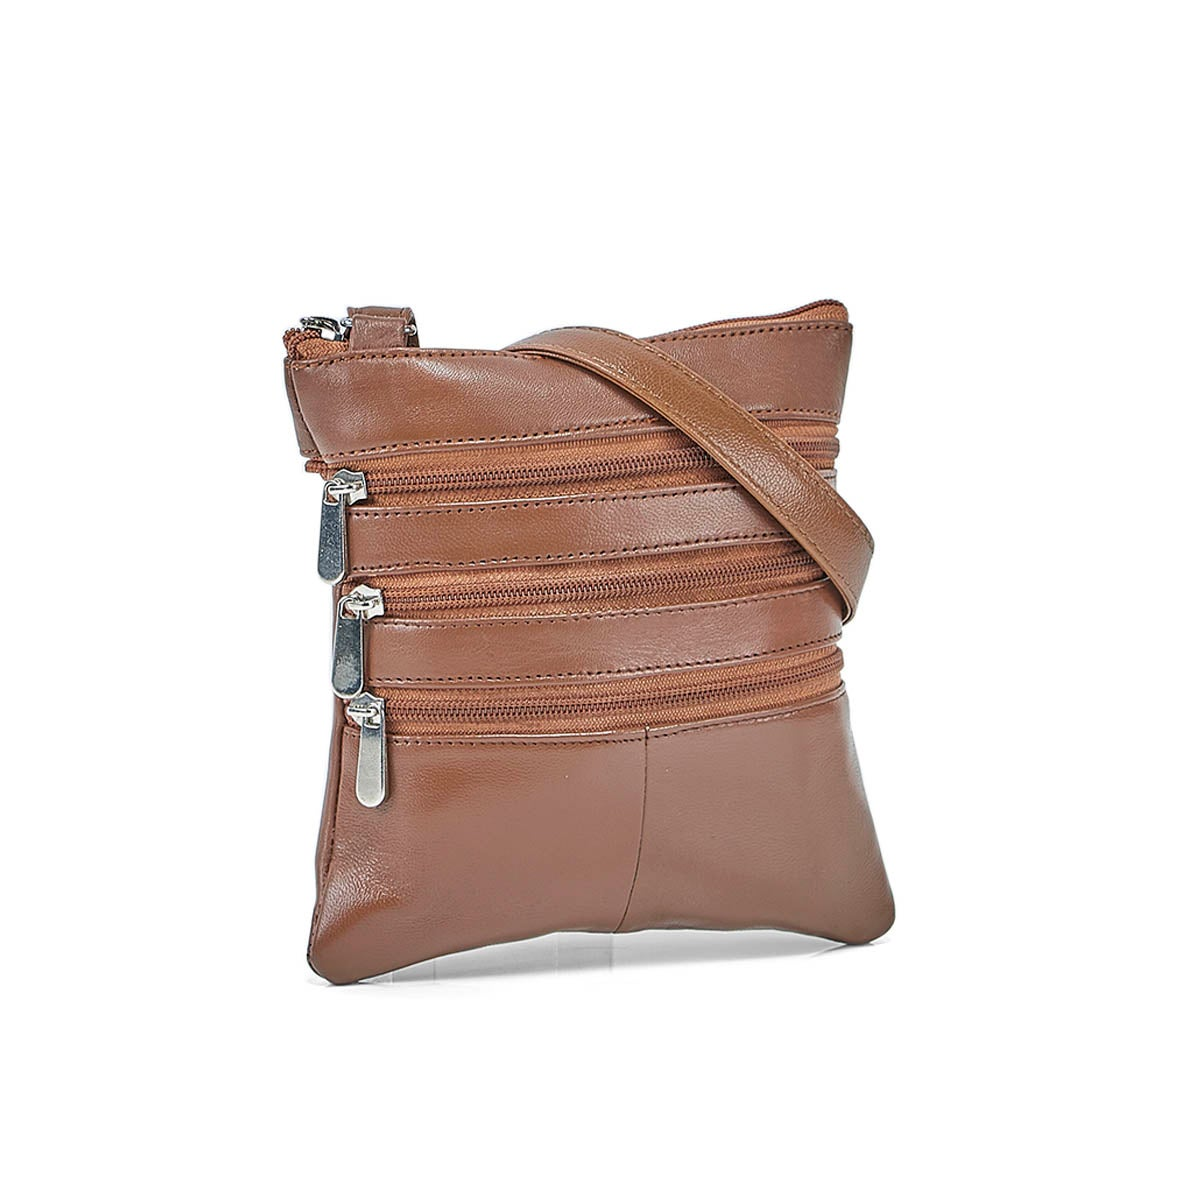 Lds tan sheep leather cross body bag